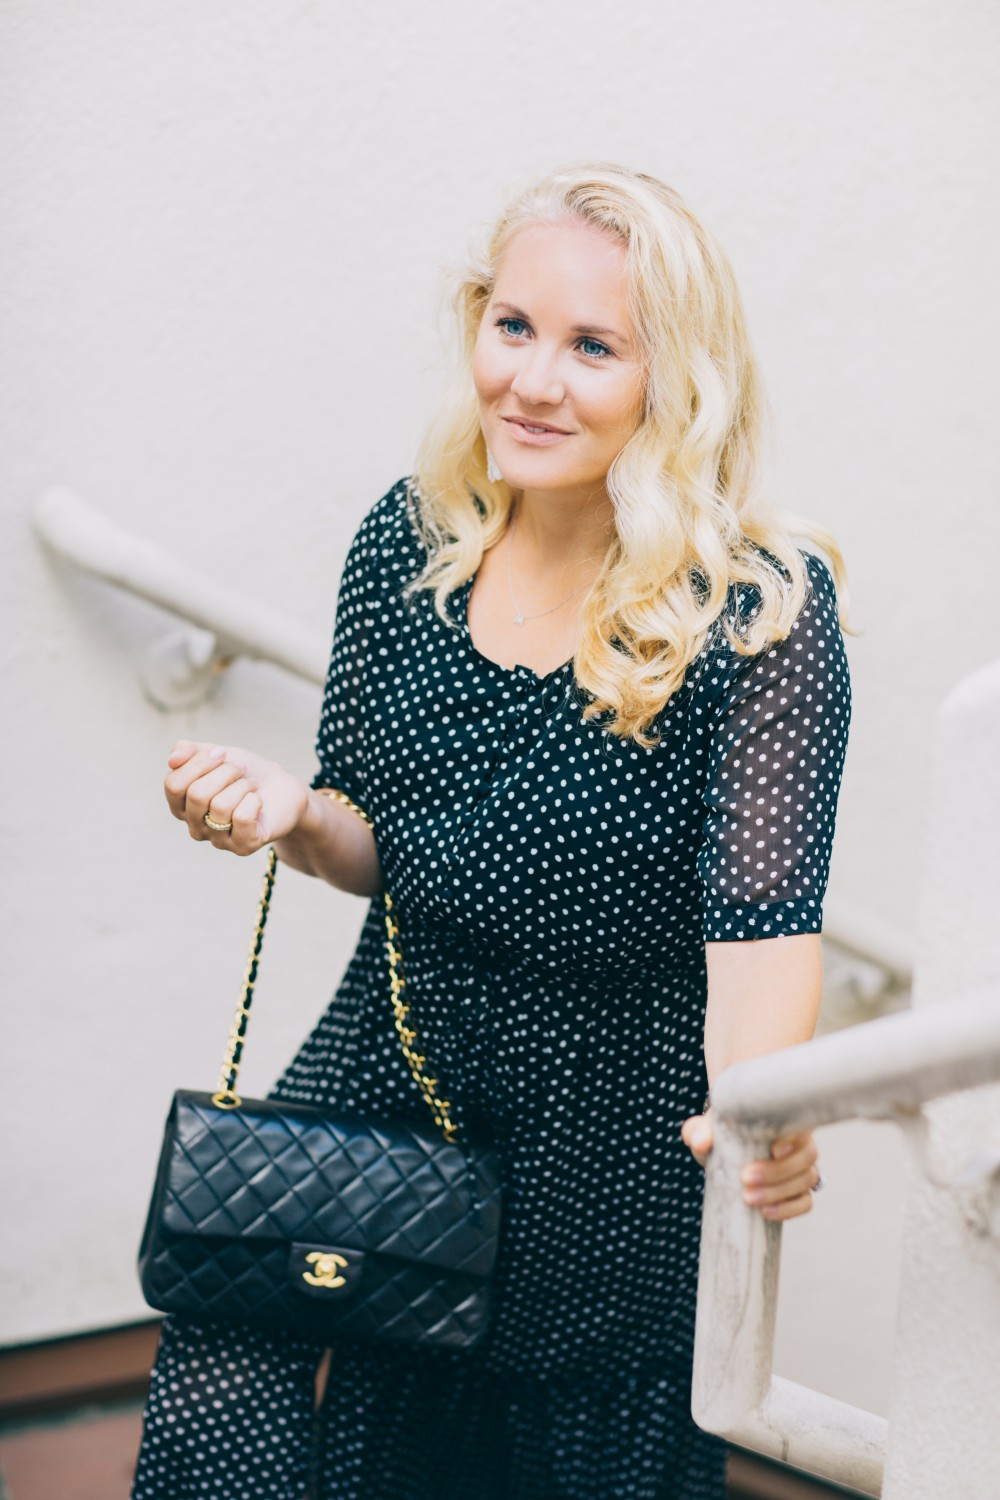 Black and White Polka Dot Maxi Dress-Who What Wear for Target-Target Maxi Dress-Polka Dot Dress-Outfit Inspiration-Bay Area Fashion Blogger-Have Need Want